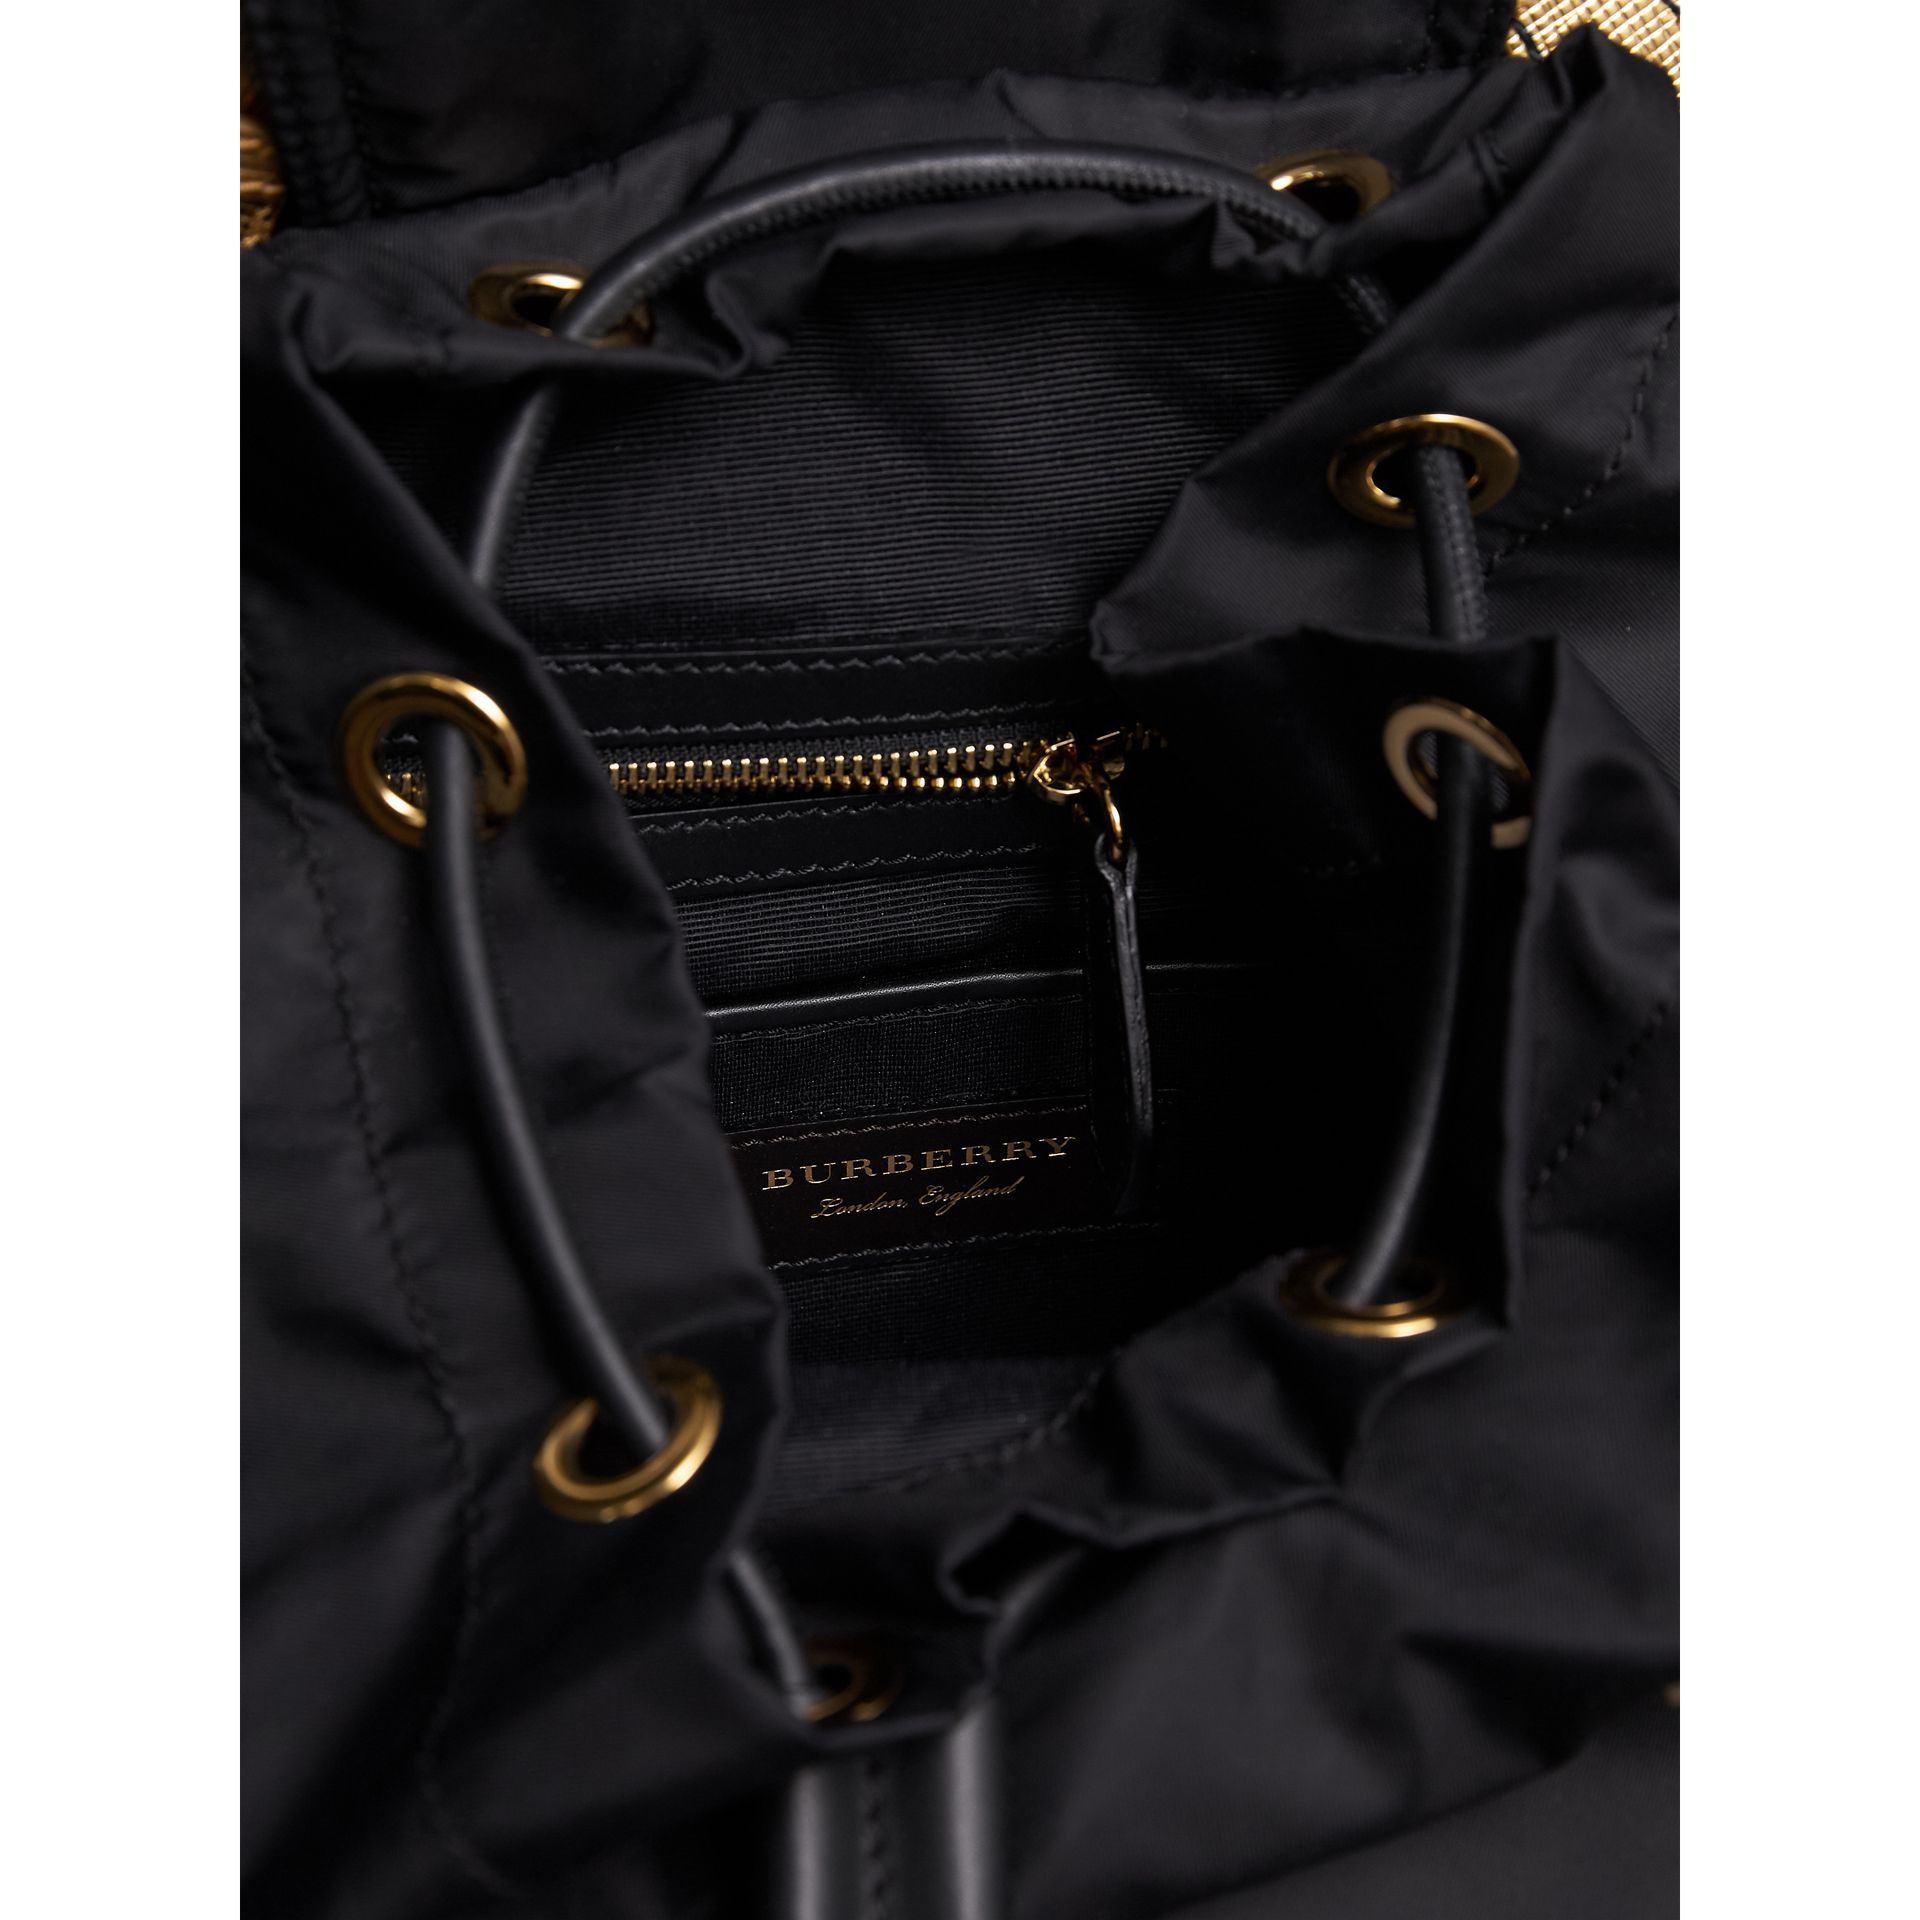 Sac The Rucksack moyen en nylon bicolore et cuir (Noir/or) - Femme | Burberry - photo de la galerie 5